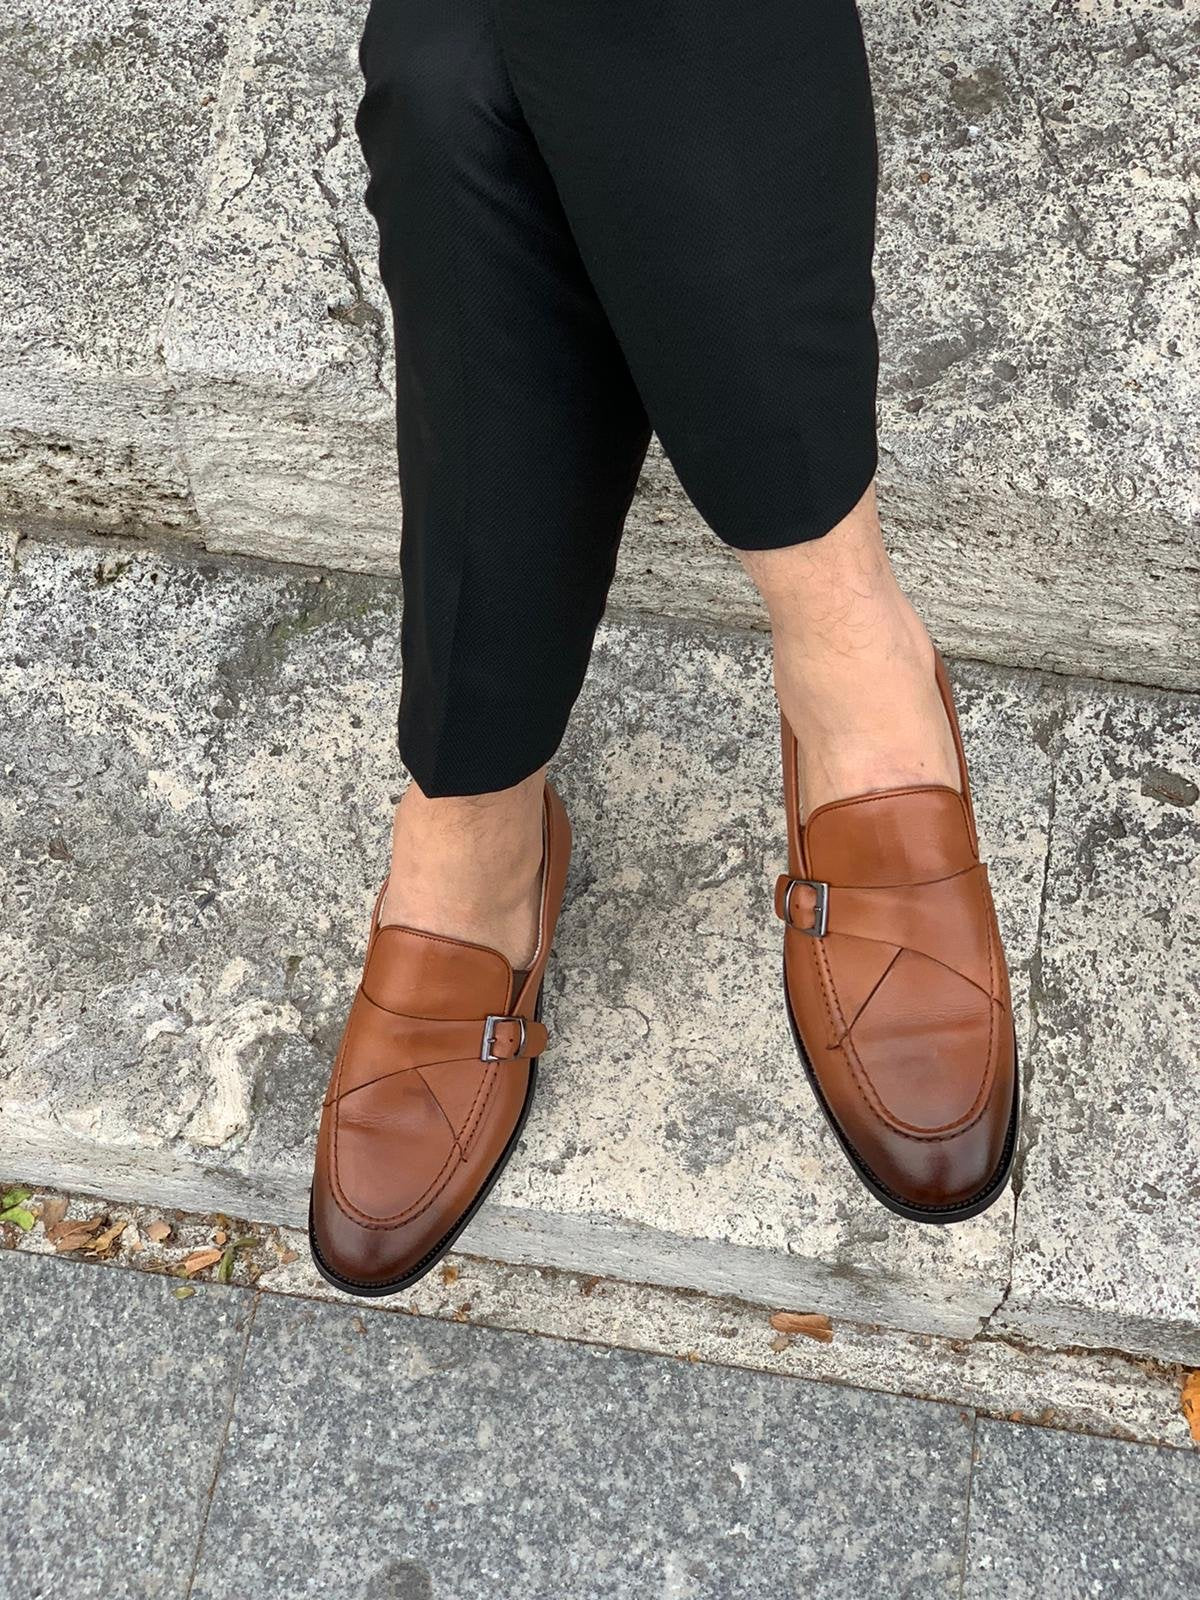 Stanoss Tan Buckle Shoes